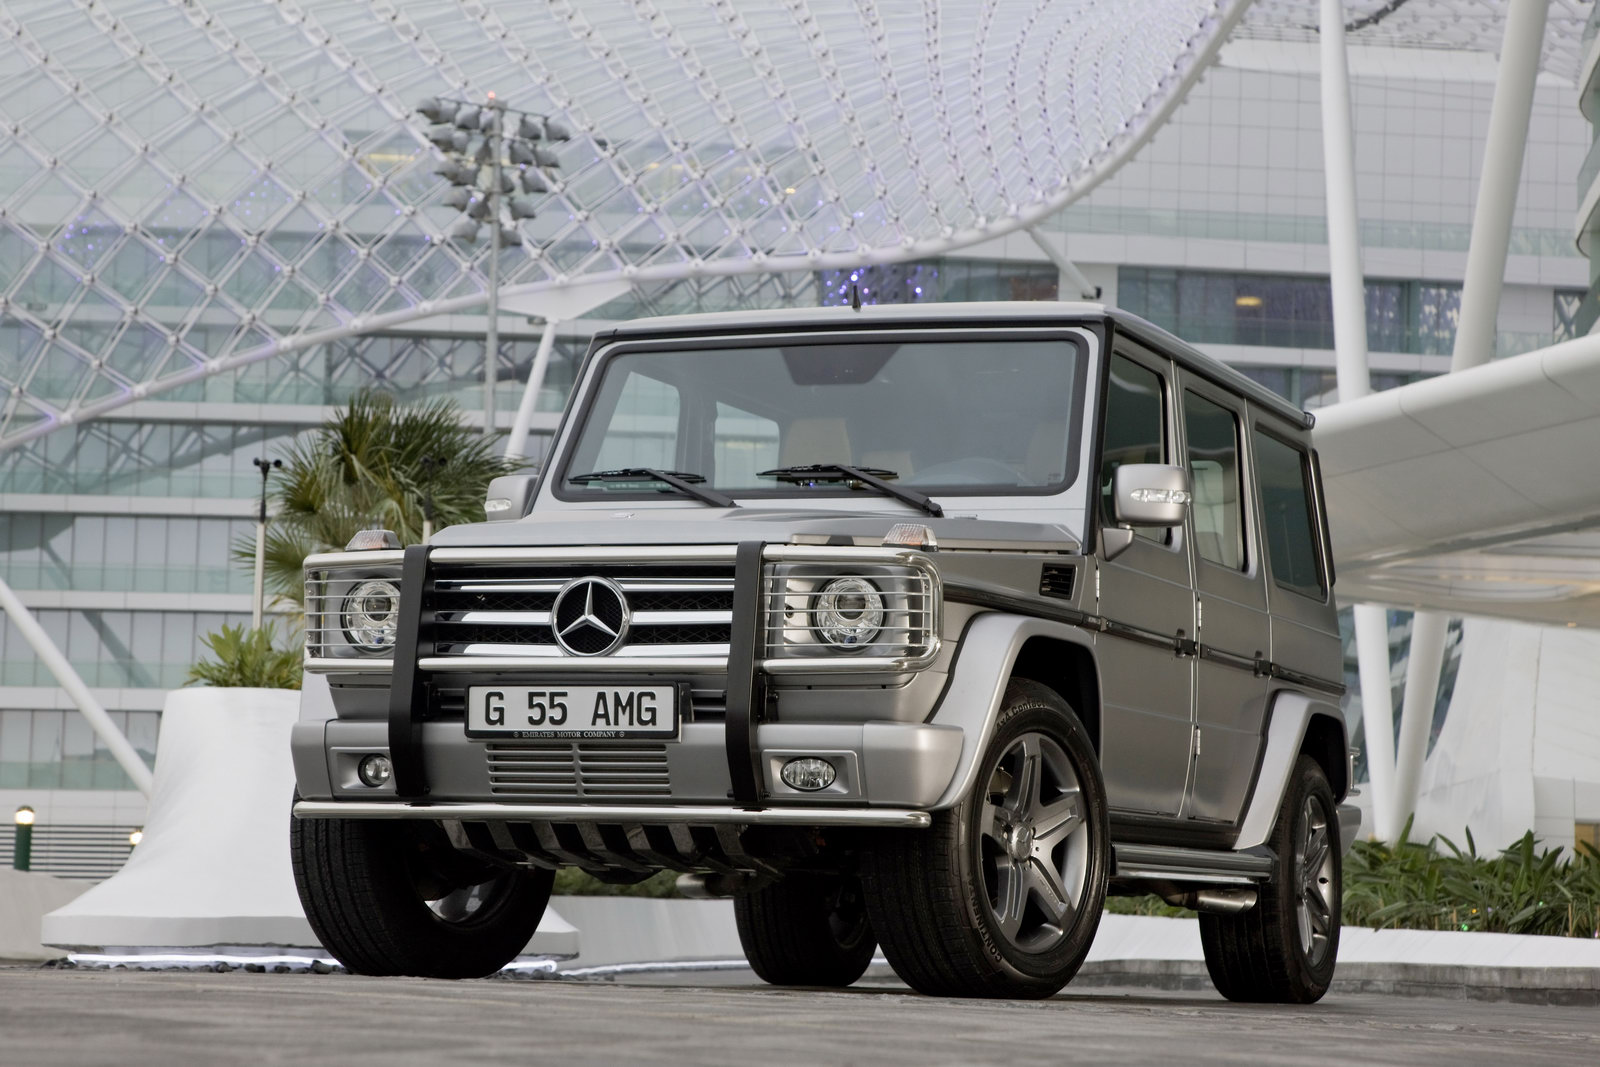 Mercedes G55 AMG 6 Mercedes Benz G ClassVariant  More Attractive and Dynamic in Nature